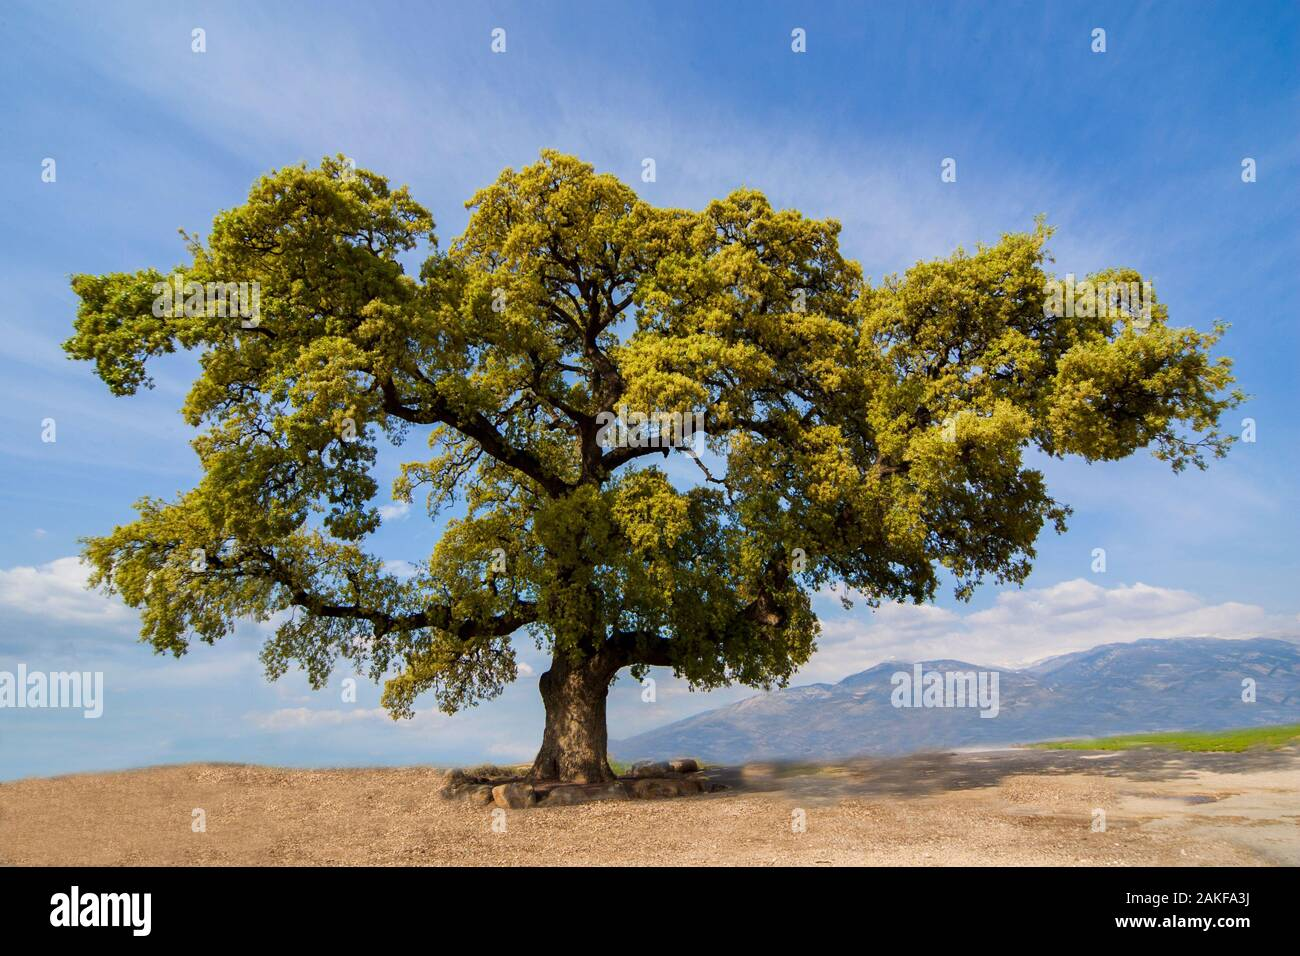 Quercus ithaburensis, the Mount Tabor oak, is a tree in the beech family. Photographed in the Galilee, Israel in March Stock Photo